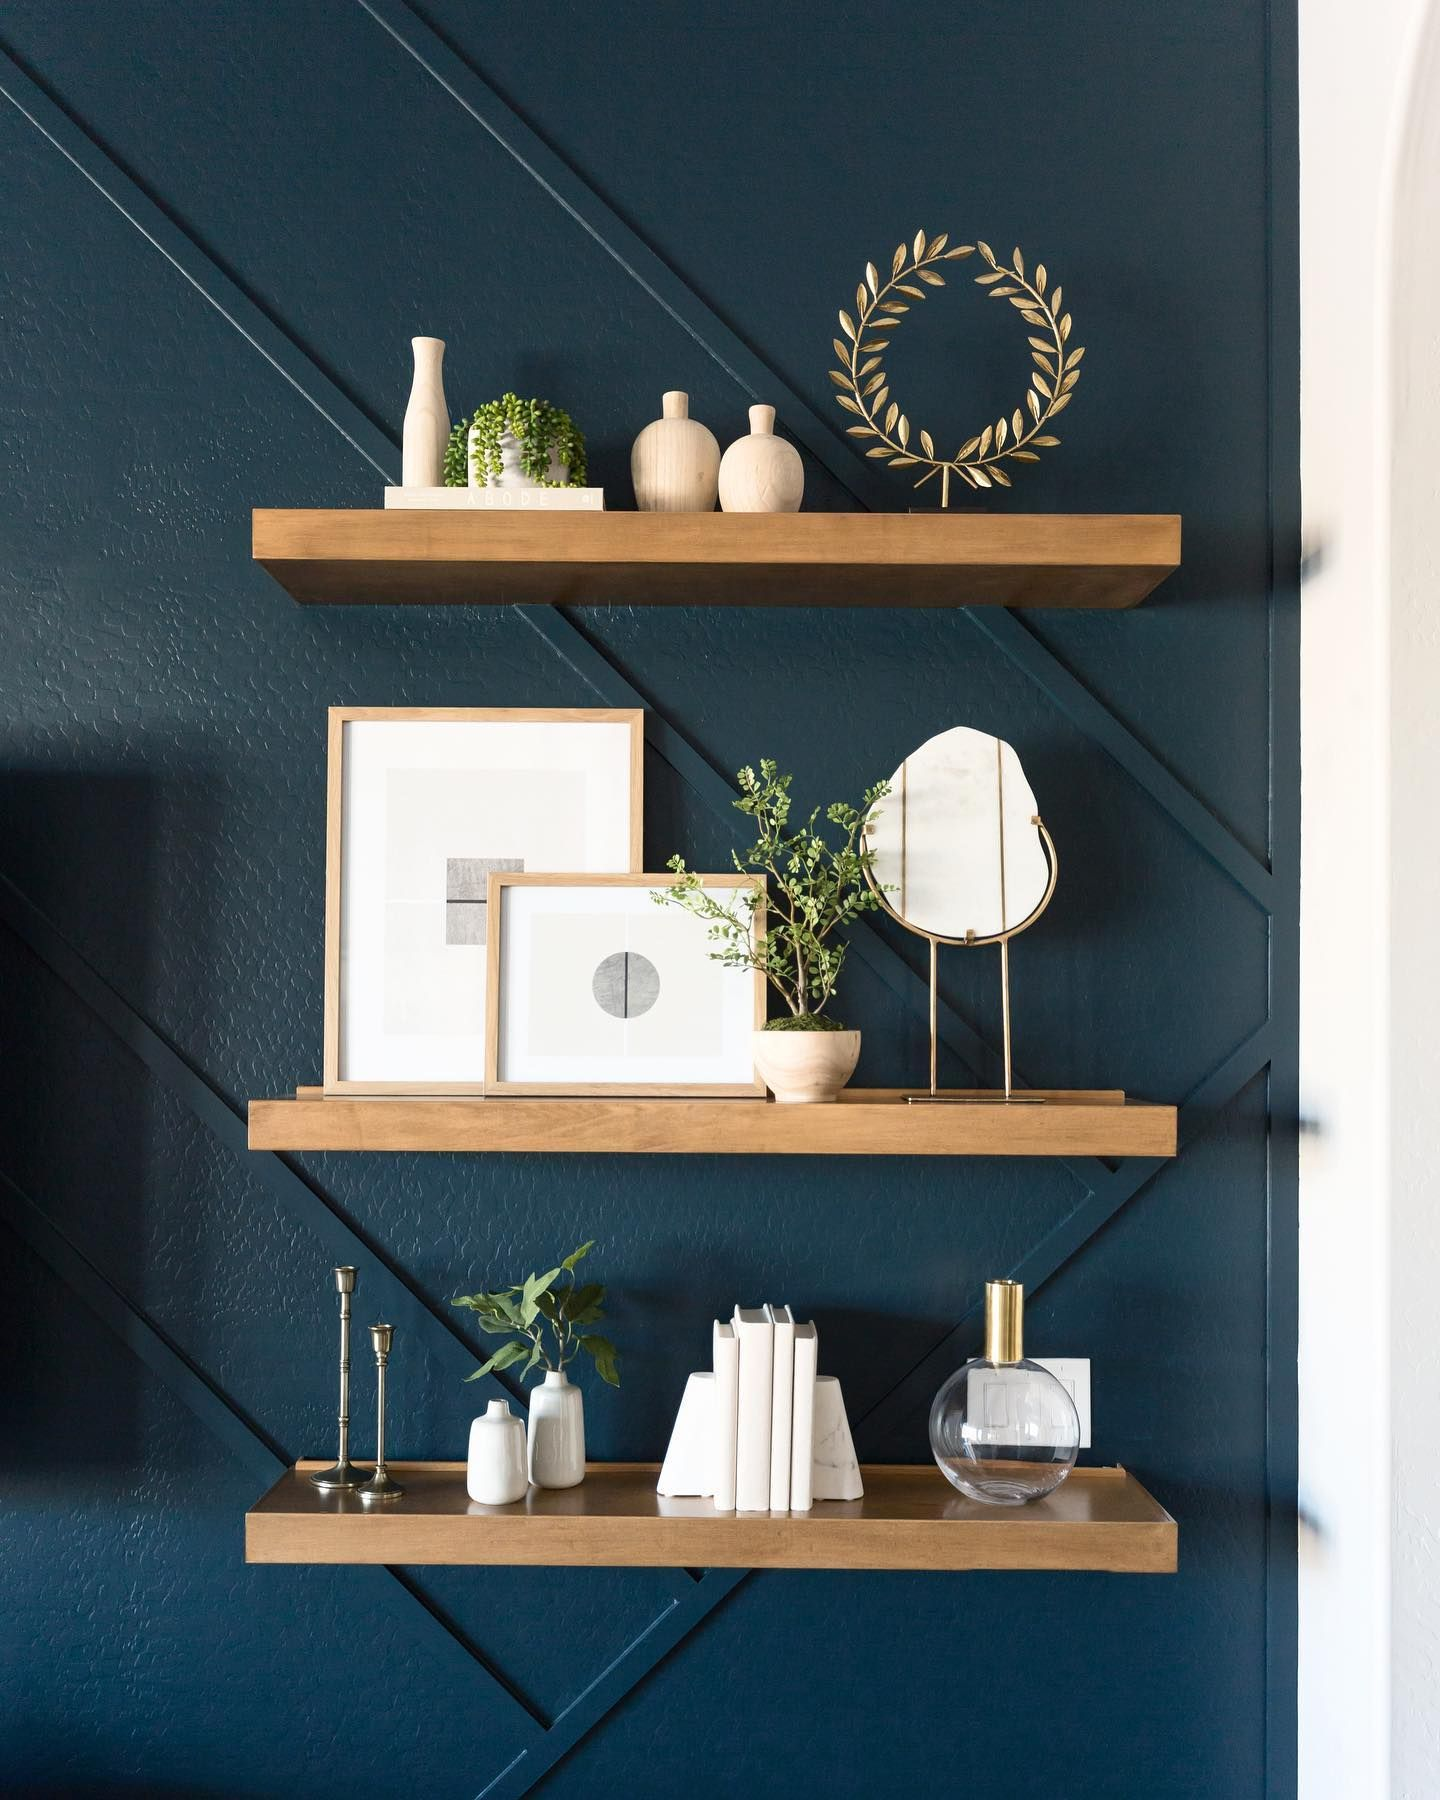 Here S A Closeup Of The Floating Shelves On The Dark Blue Wall From The Heyneighborproject I Blue Wall Decor Living Room Blue Wall Decor Interior Wall Design